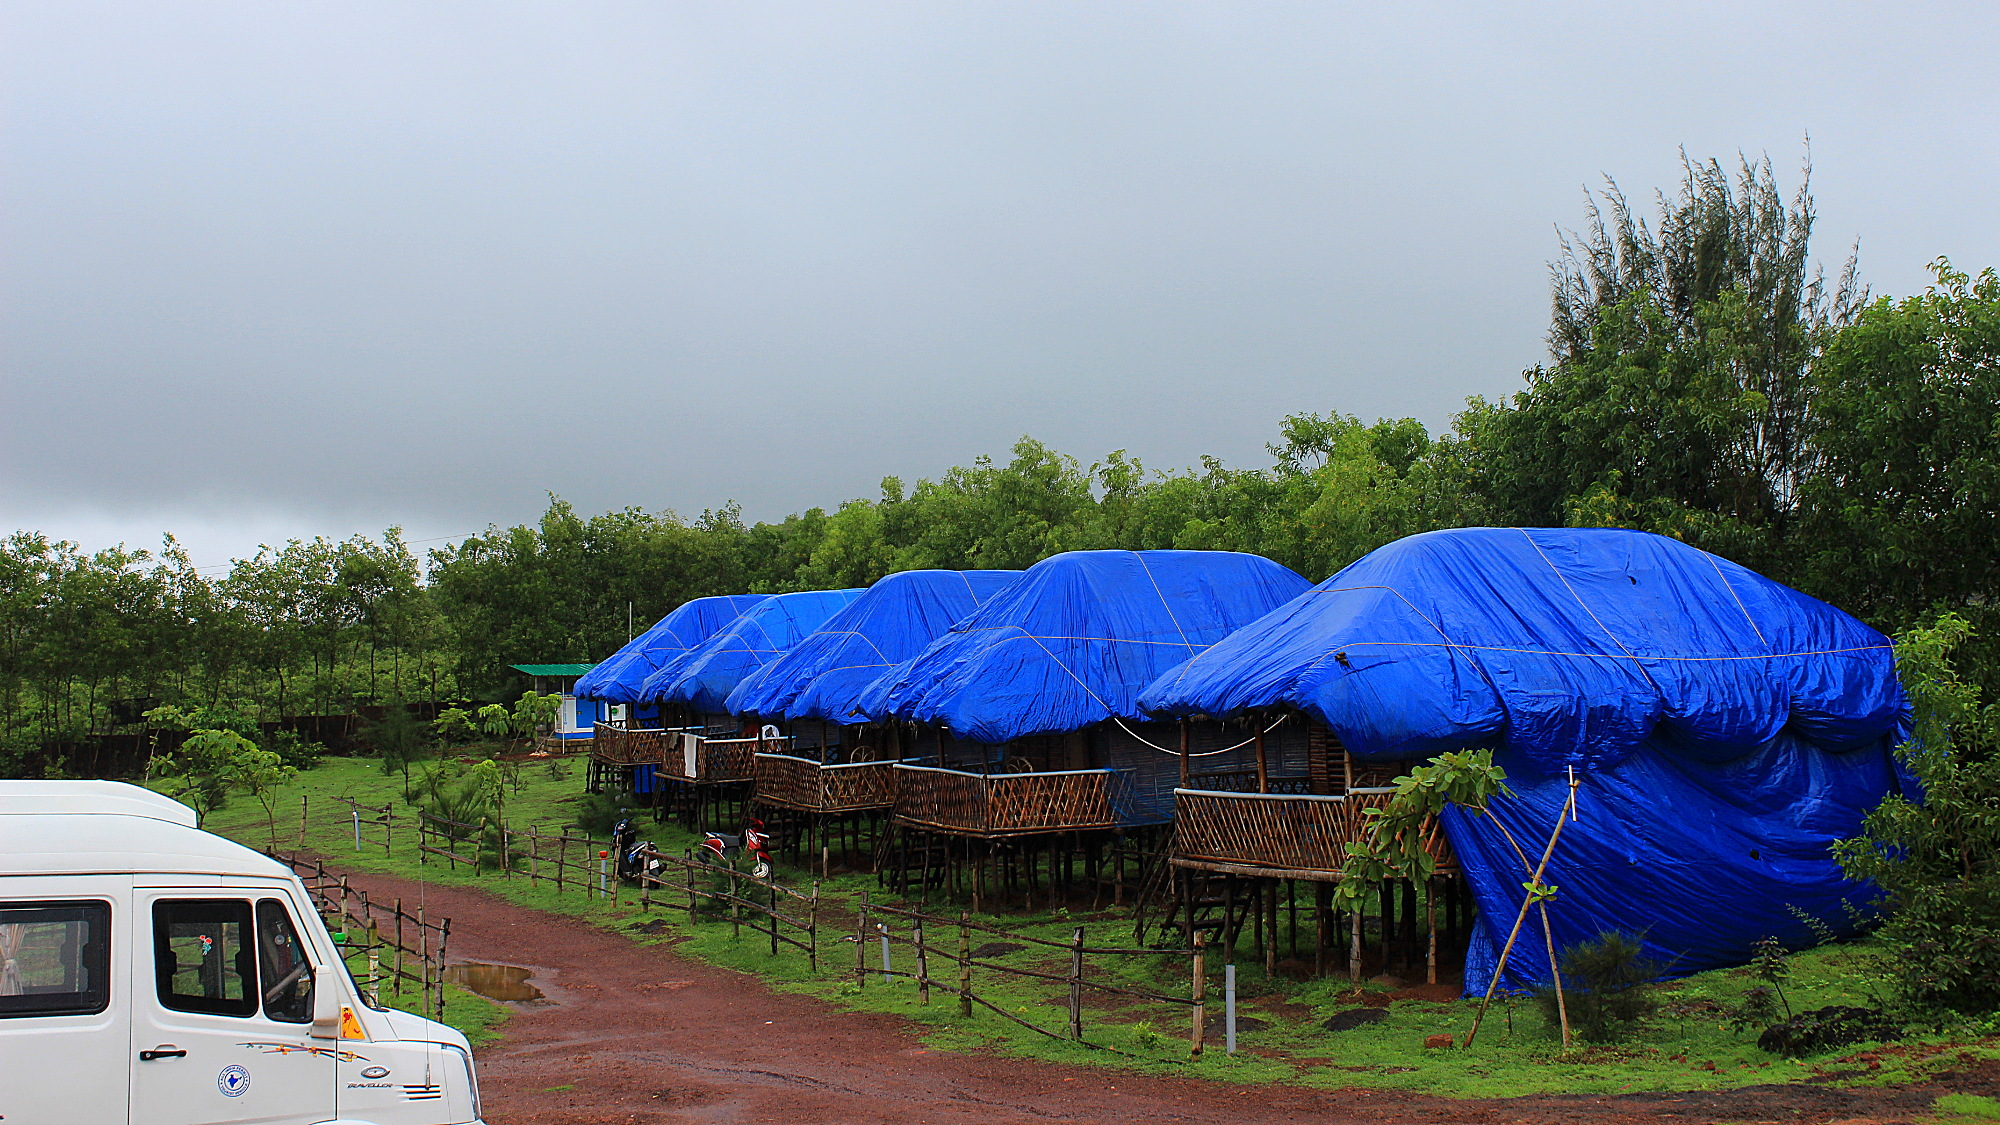 The bungalows of Zostel Gokarna covered with blue tarps for the rain during the Monsoon season.